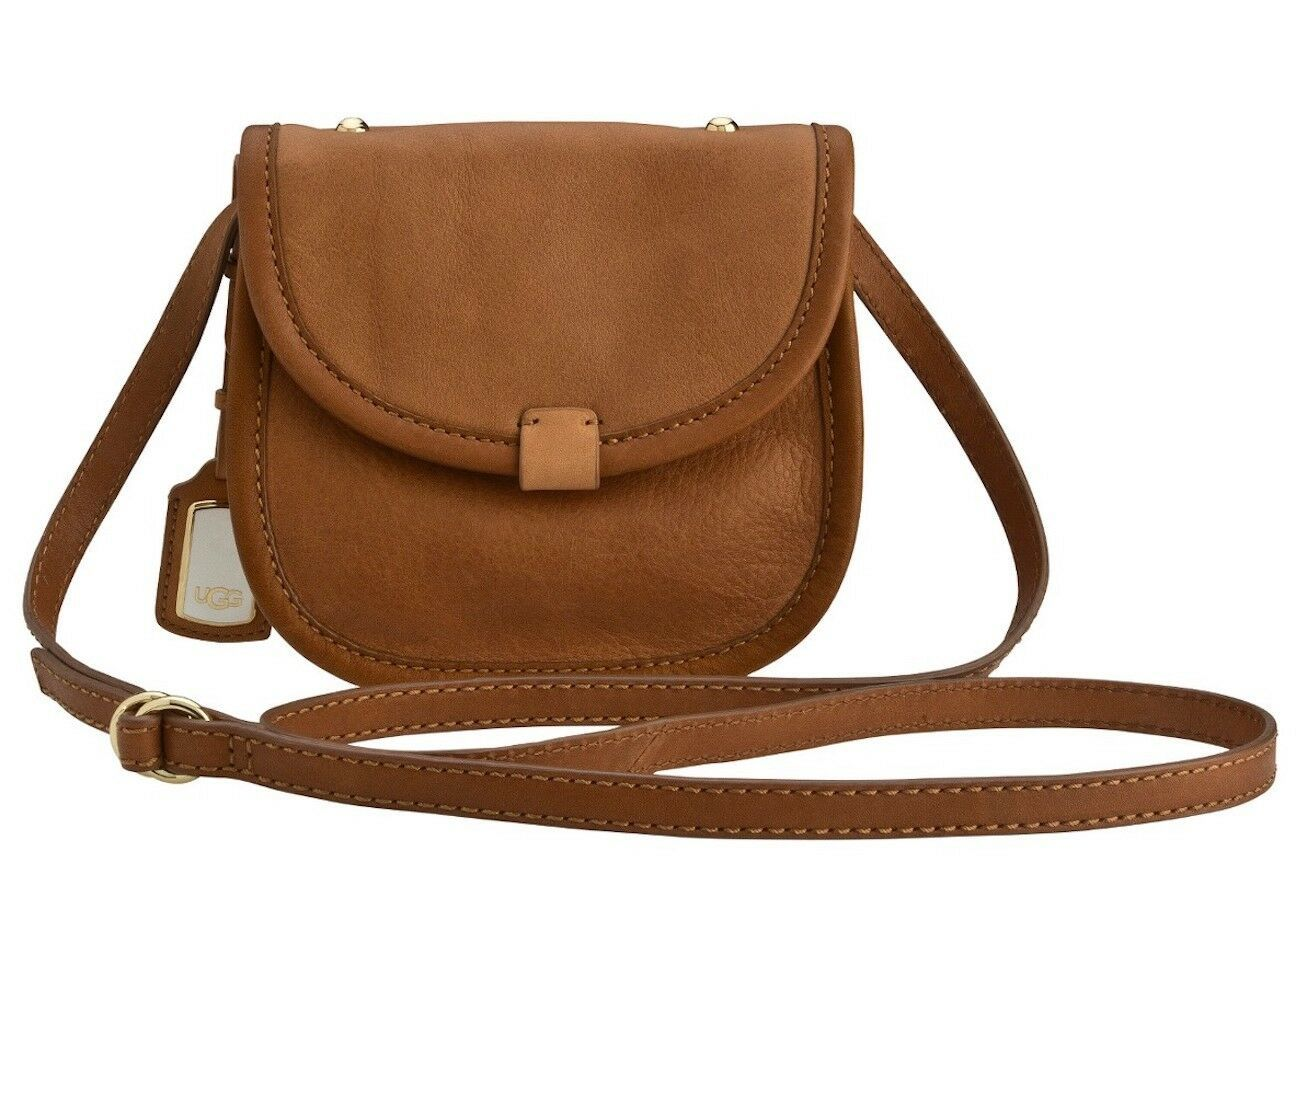 Primary image for UGG Bag Classic Mini Flap Leather Crossbody Caramel New $175